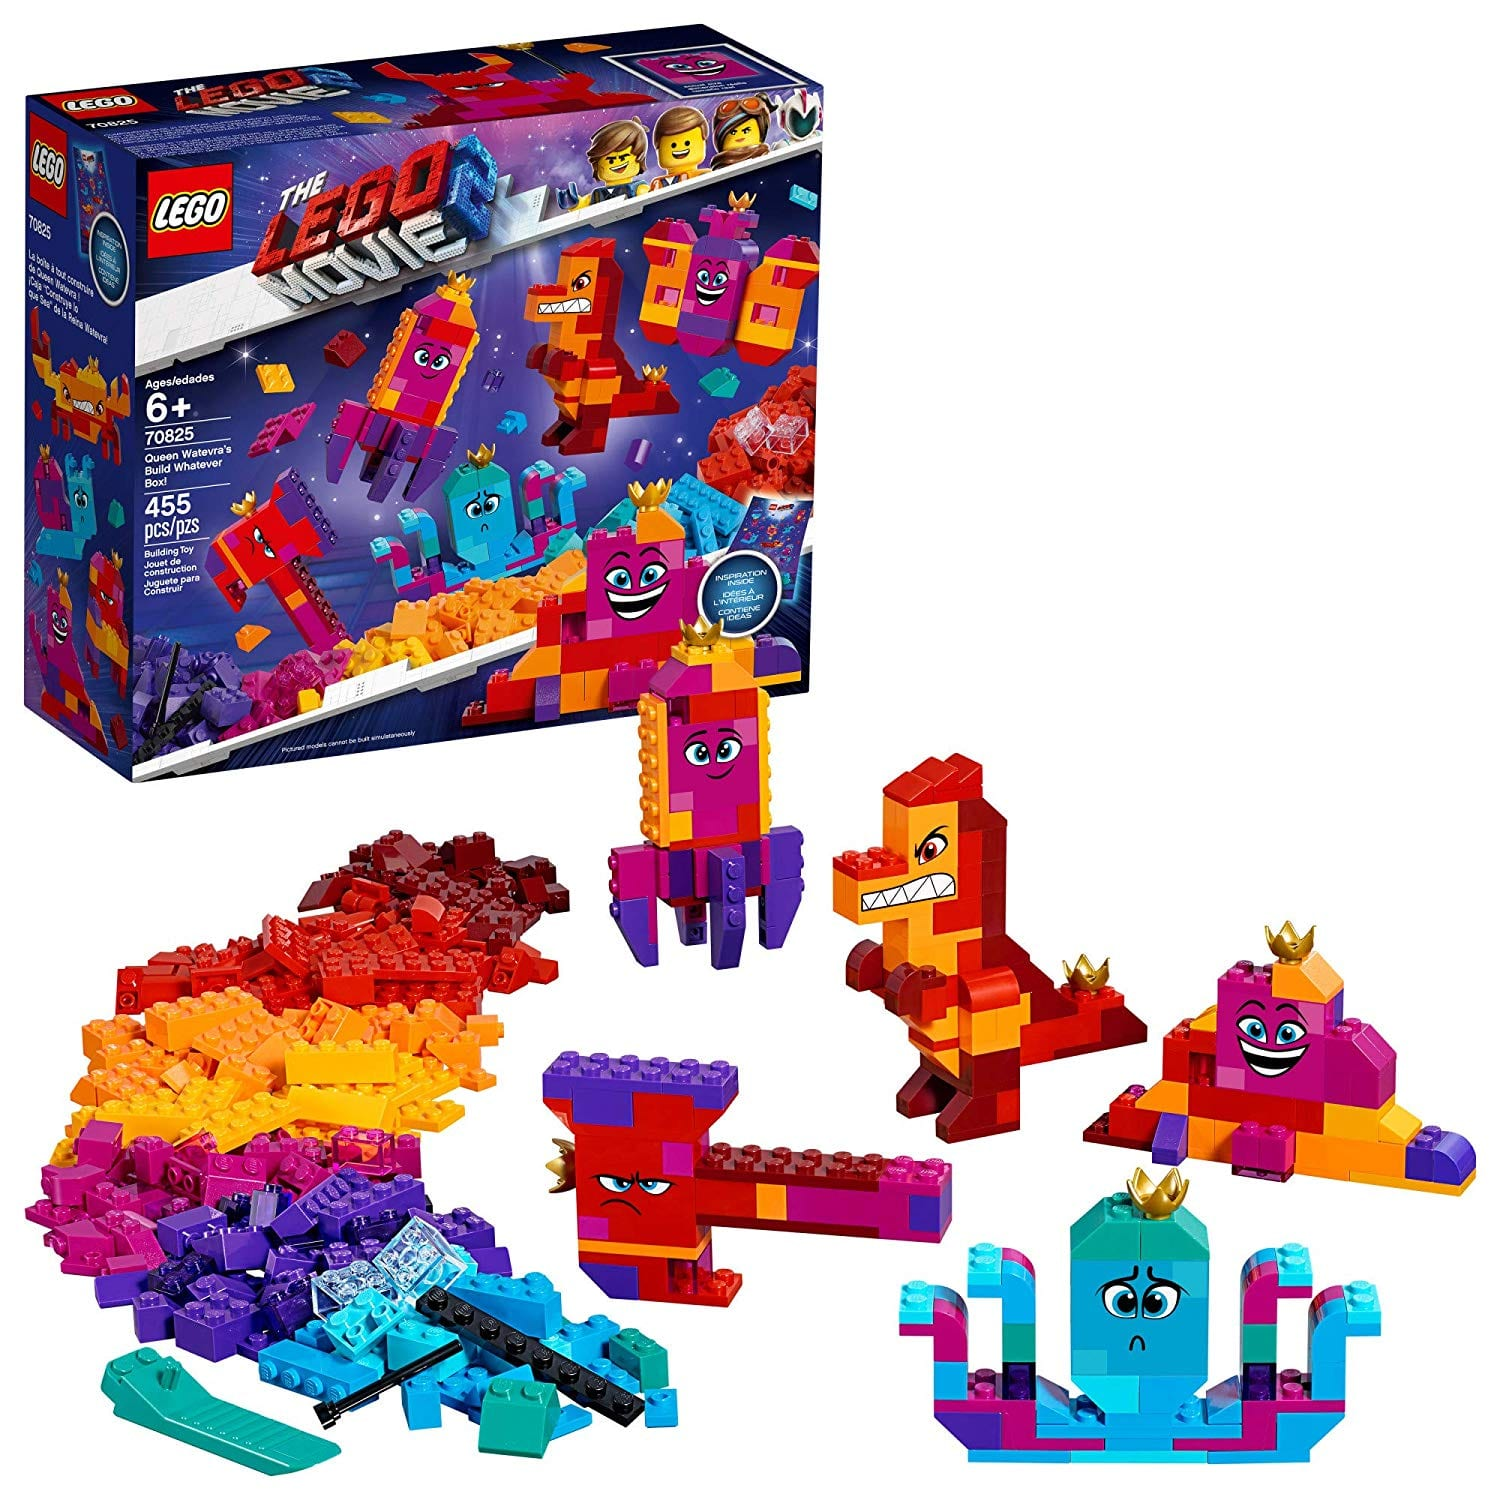 """LEGO 70825 """"The LEGO Movie 2 Queen Watevra's Build Whatever Box!"""" $22.99 at Amazon and Walmart 43% off (reg $39.99)"""